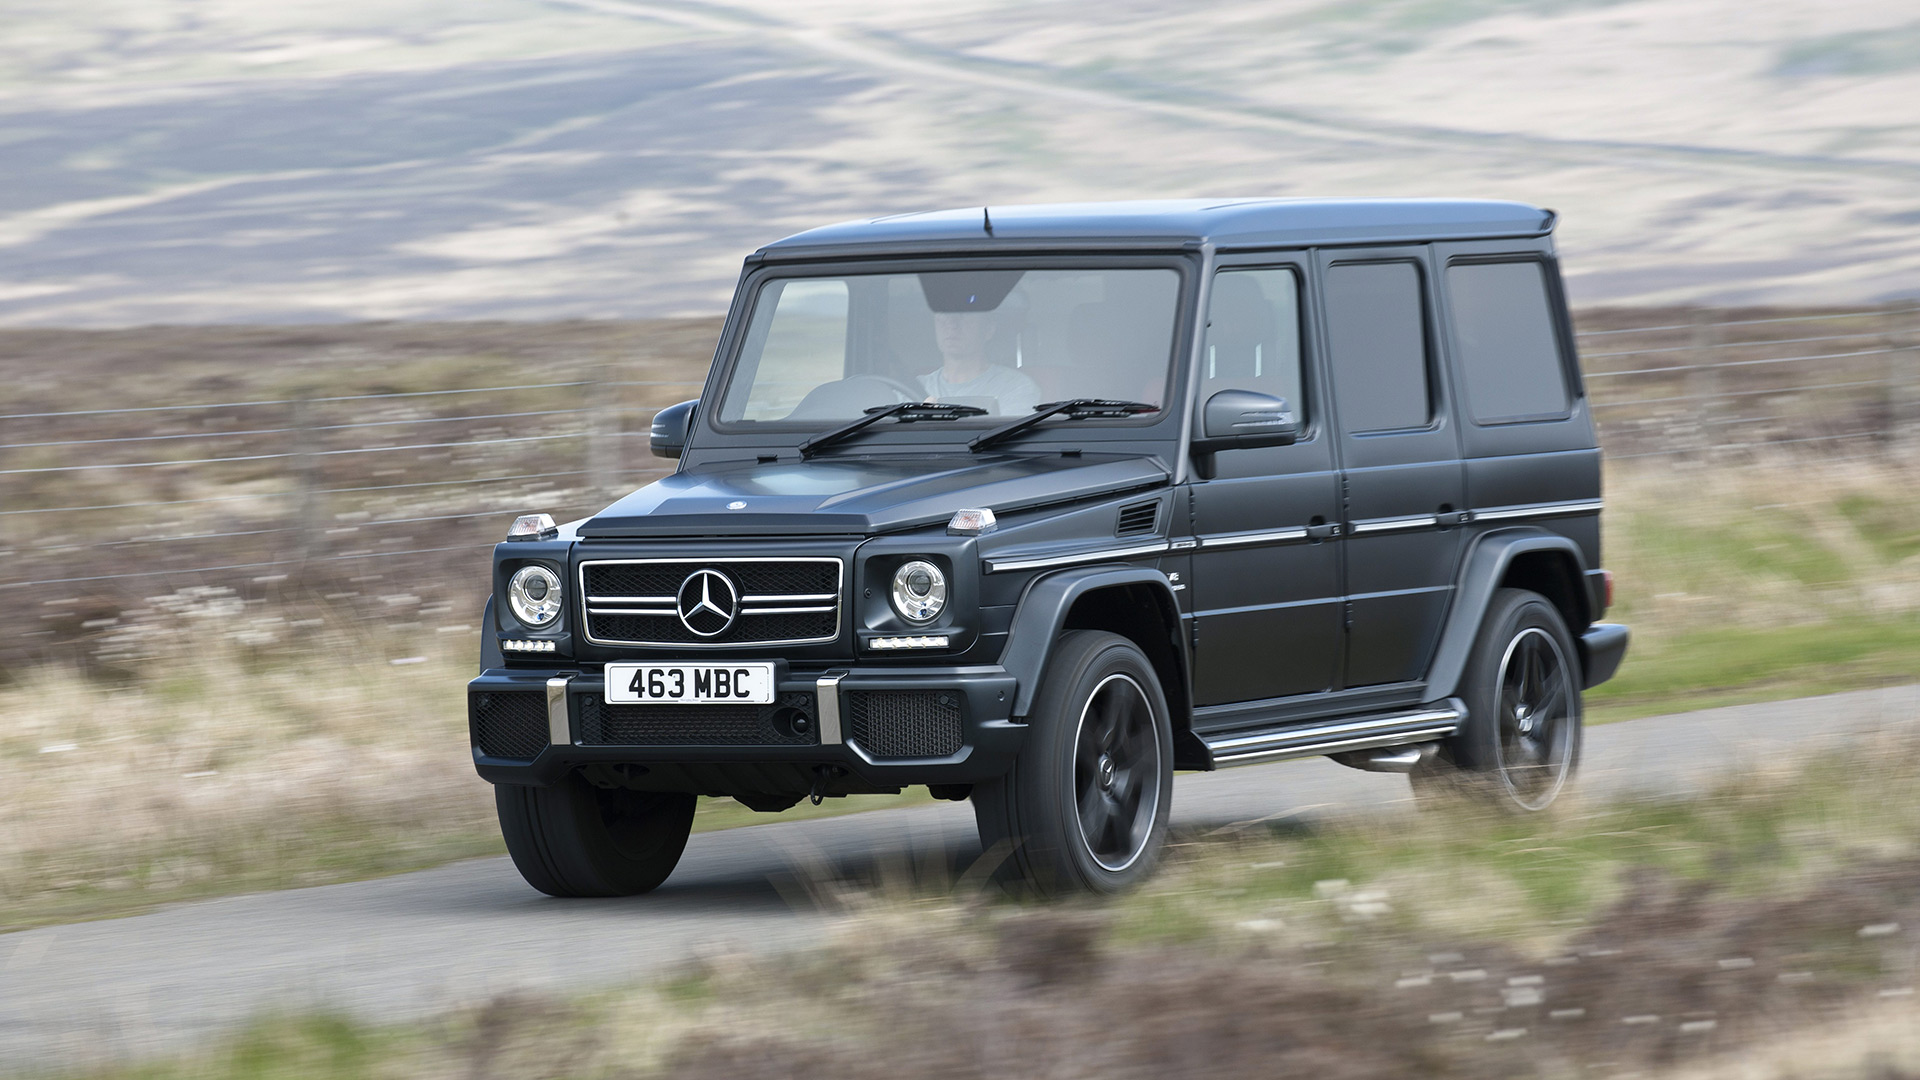 Mercedes benz g class 2017 g 63 amg price mileage for Mercedes benz g class amg